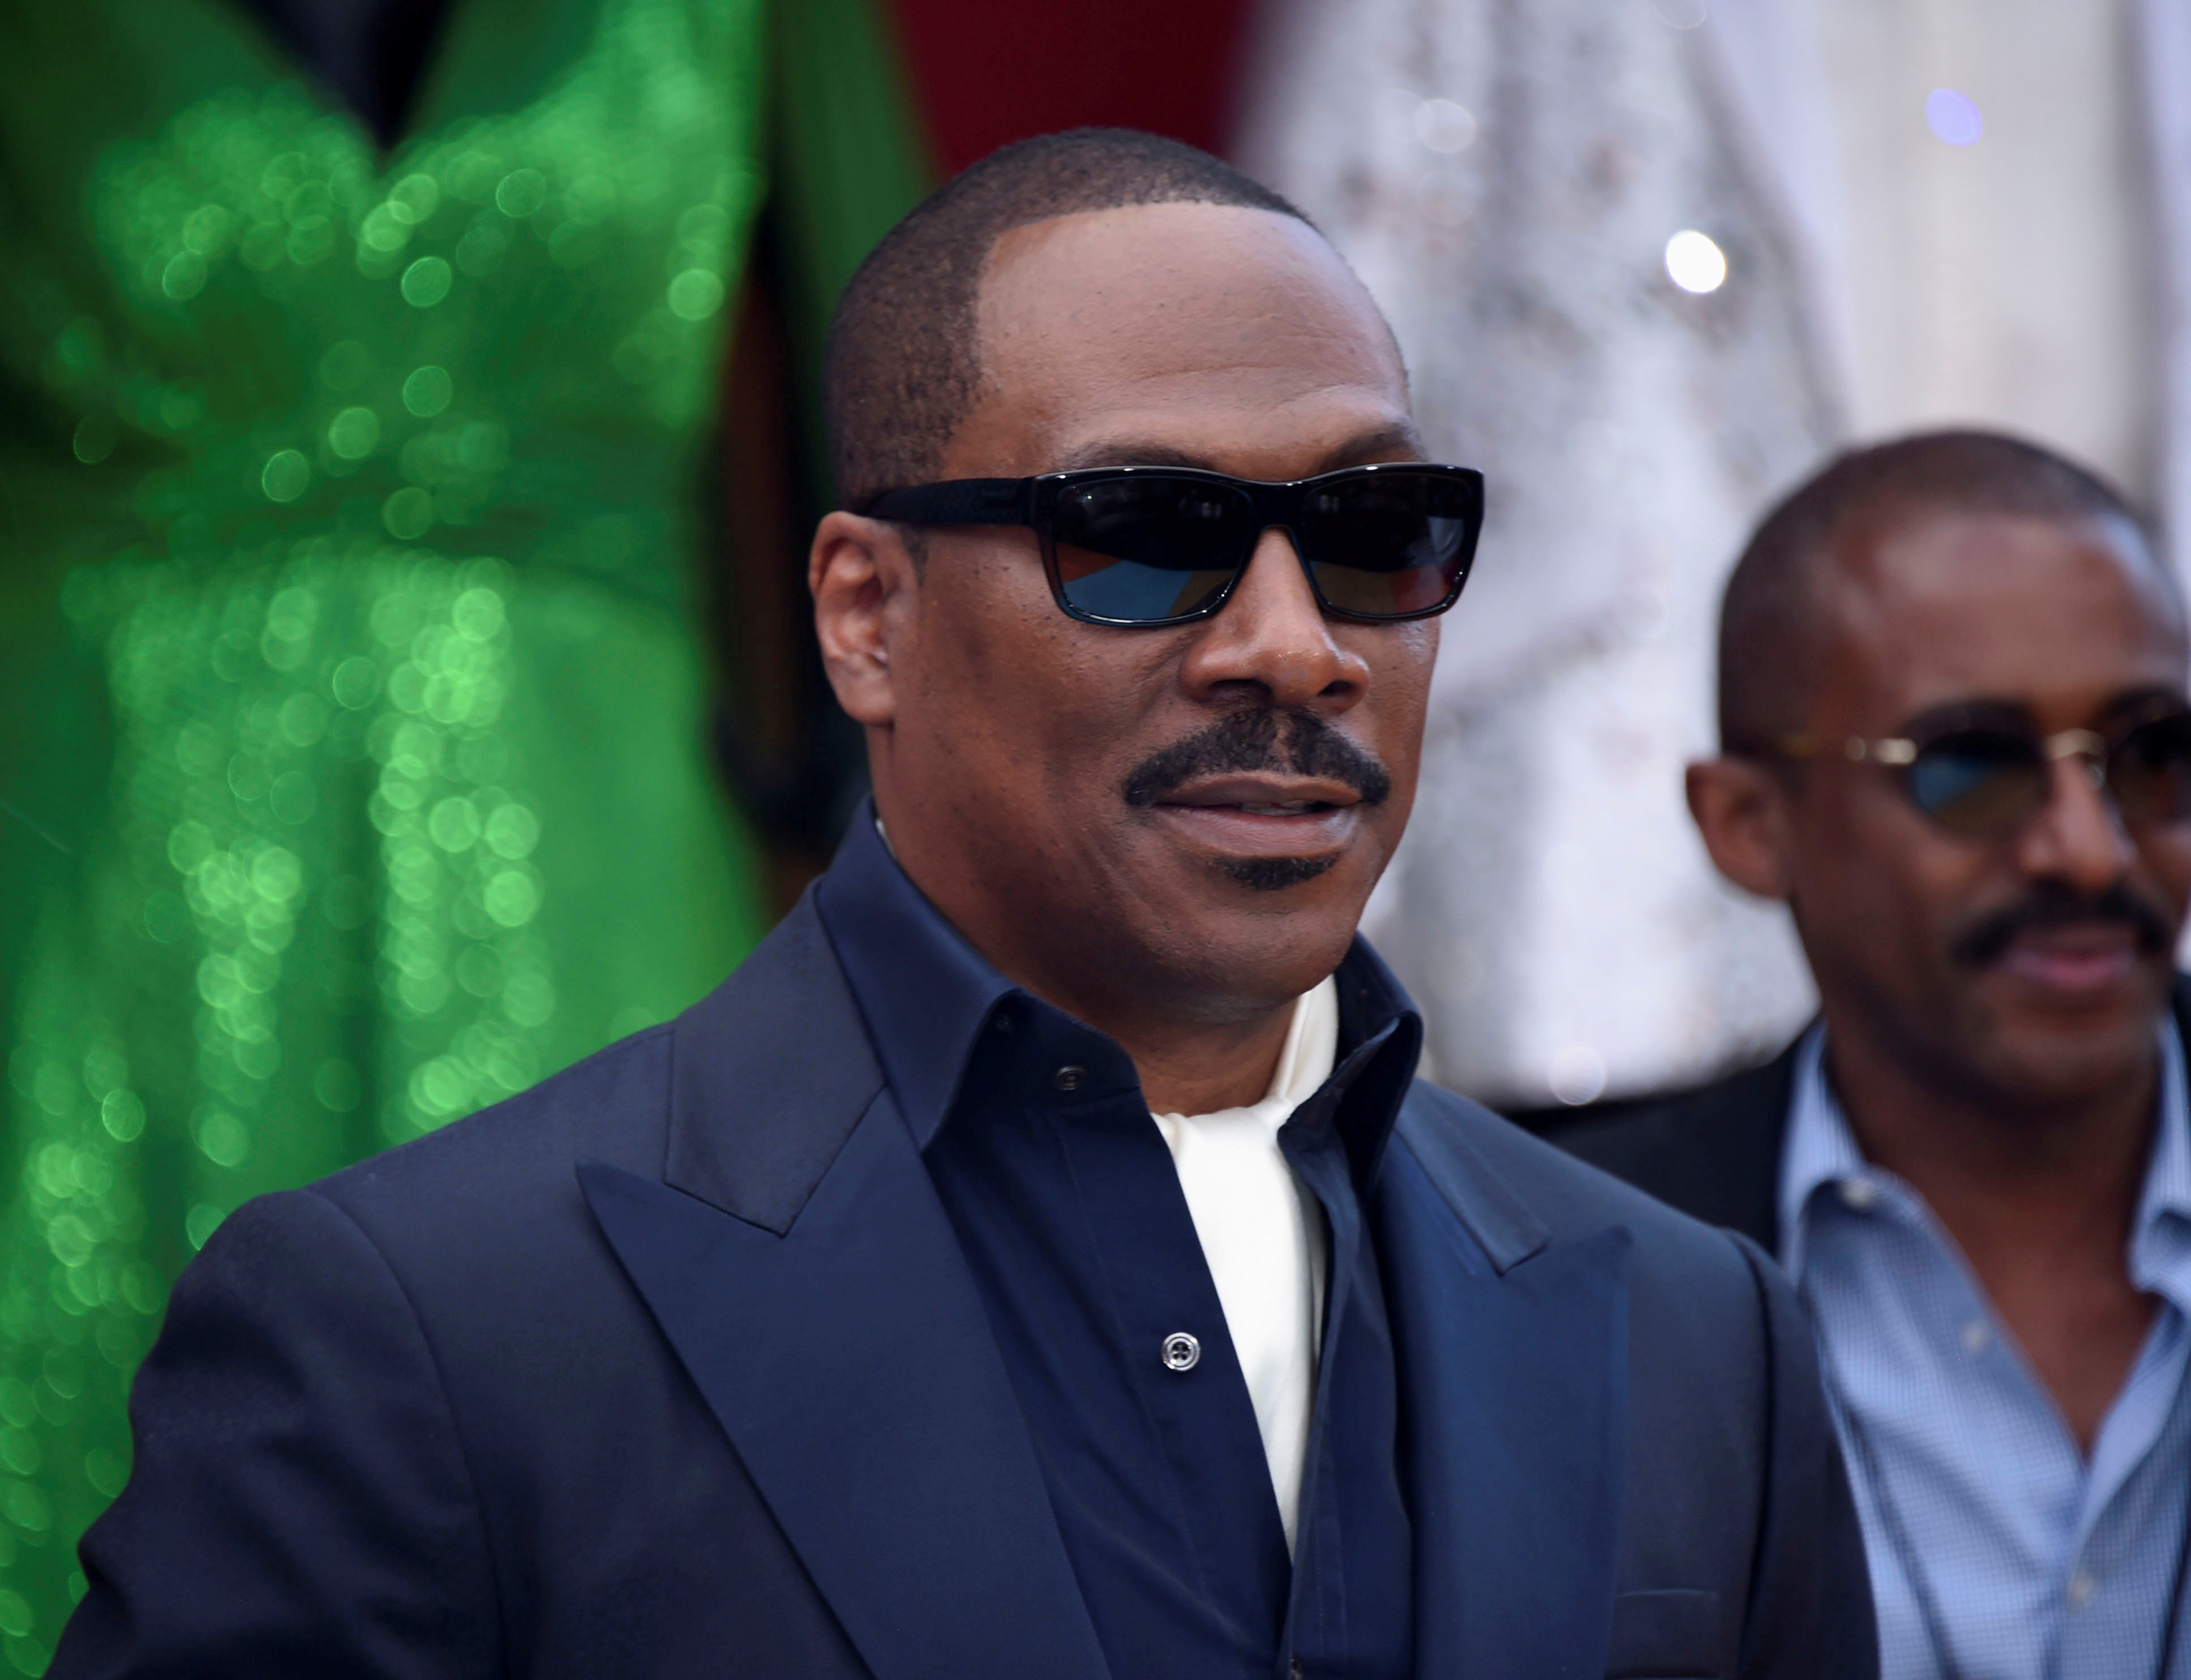 Charmed lives and comebacks: Eddie Murphy returns in 'Dolemite Is My Name'